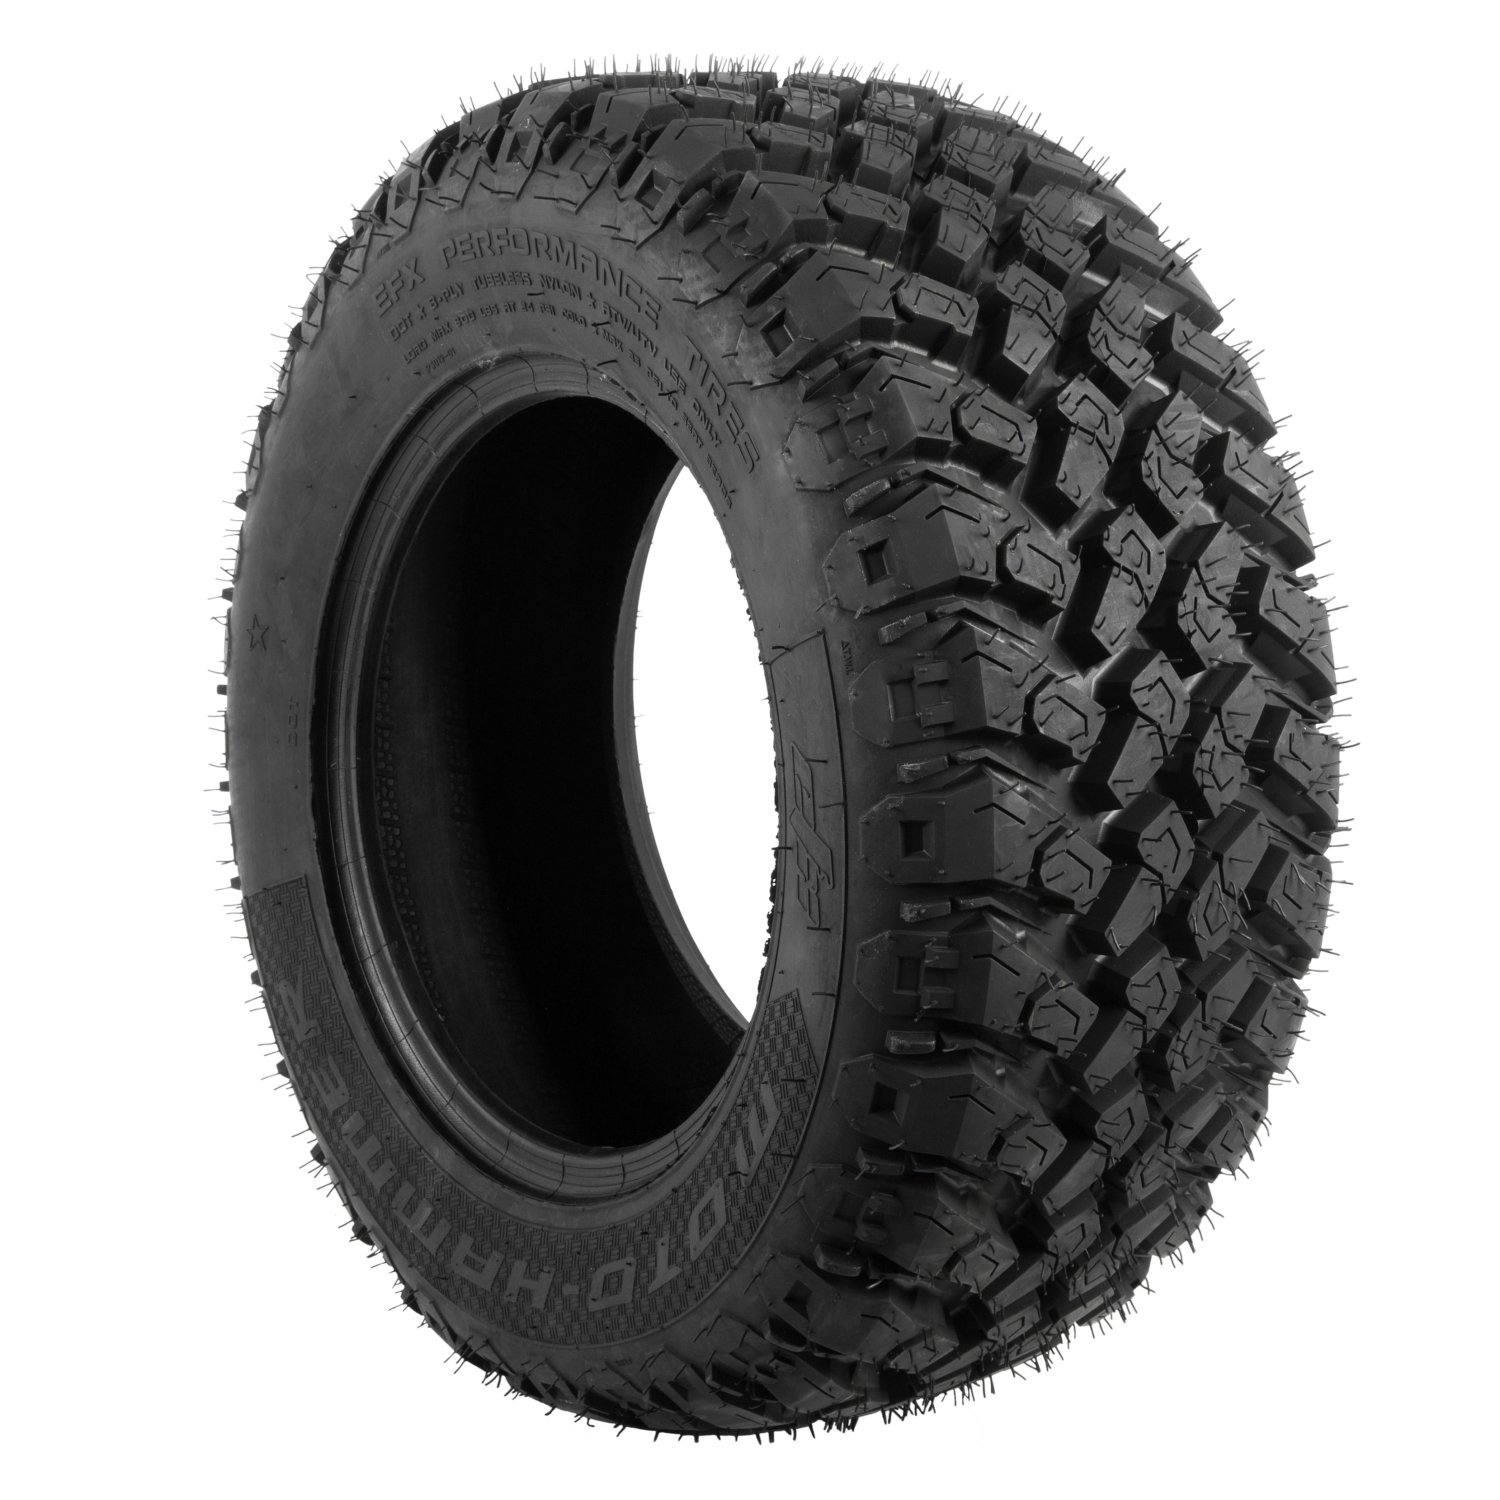 EFX Tires Motohammer 31X10X14-8Ply Dot Rad 311014 - MH-31-10-14 EFX Performance Tires 4333045302